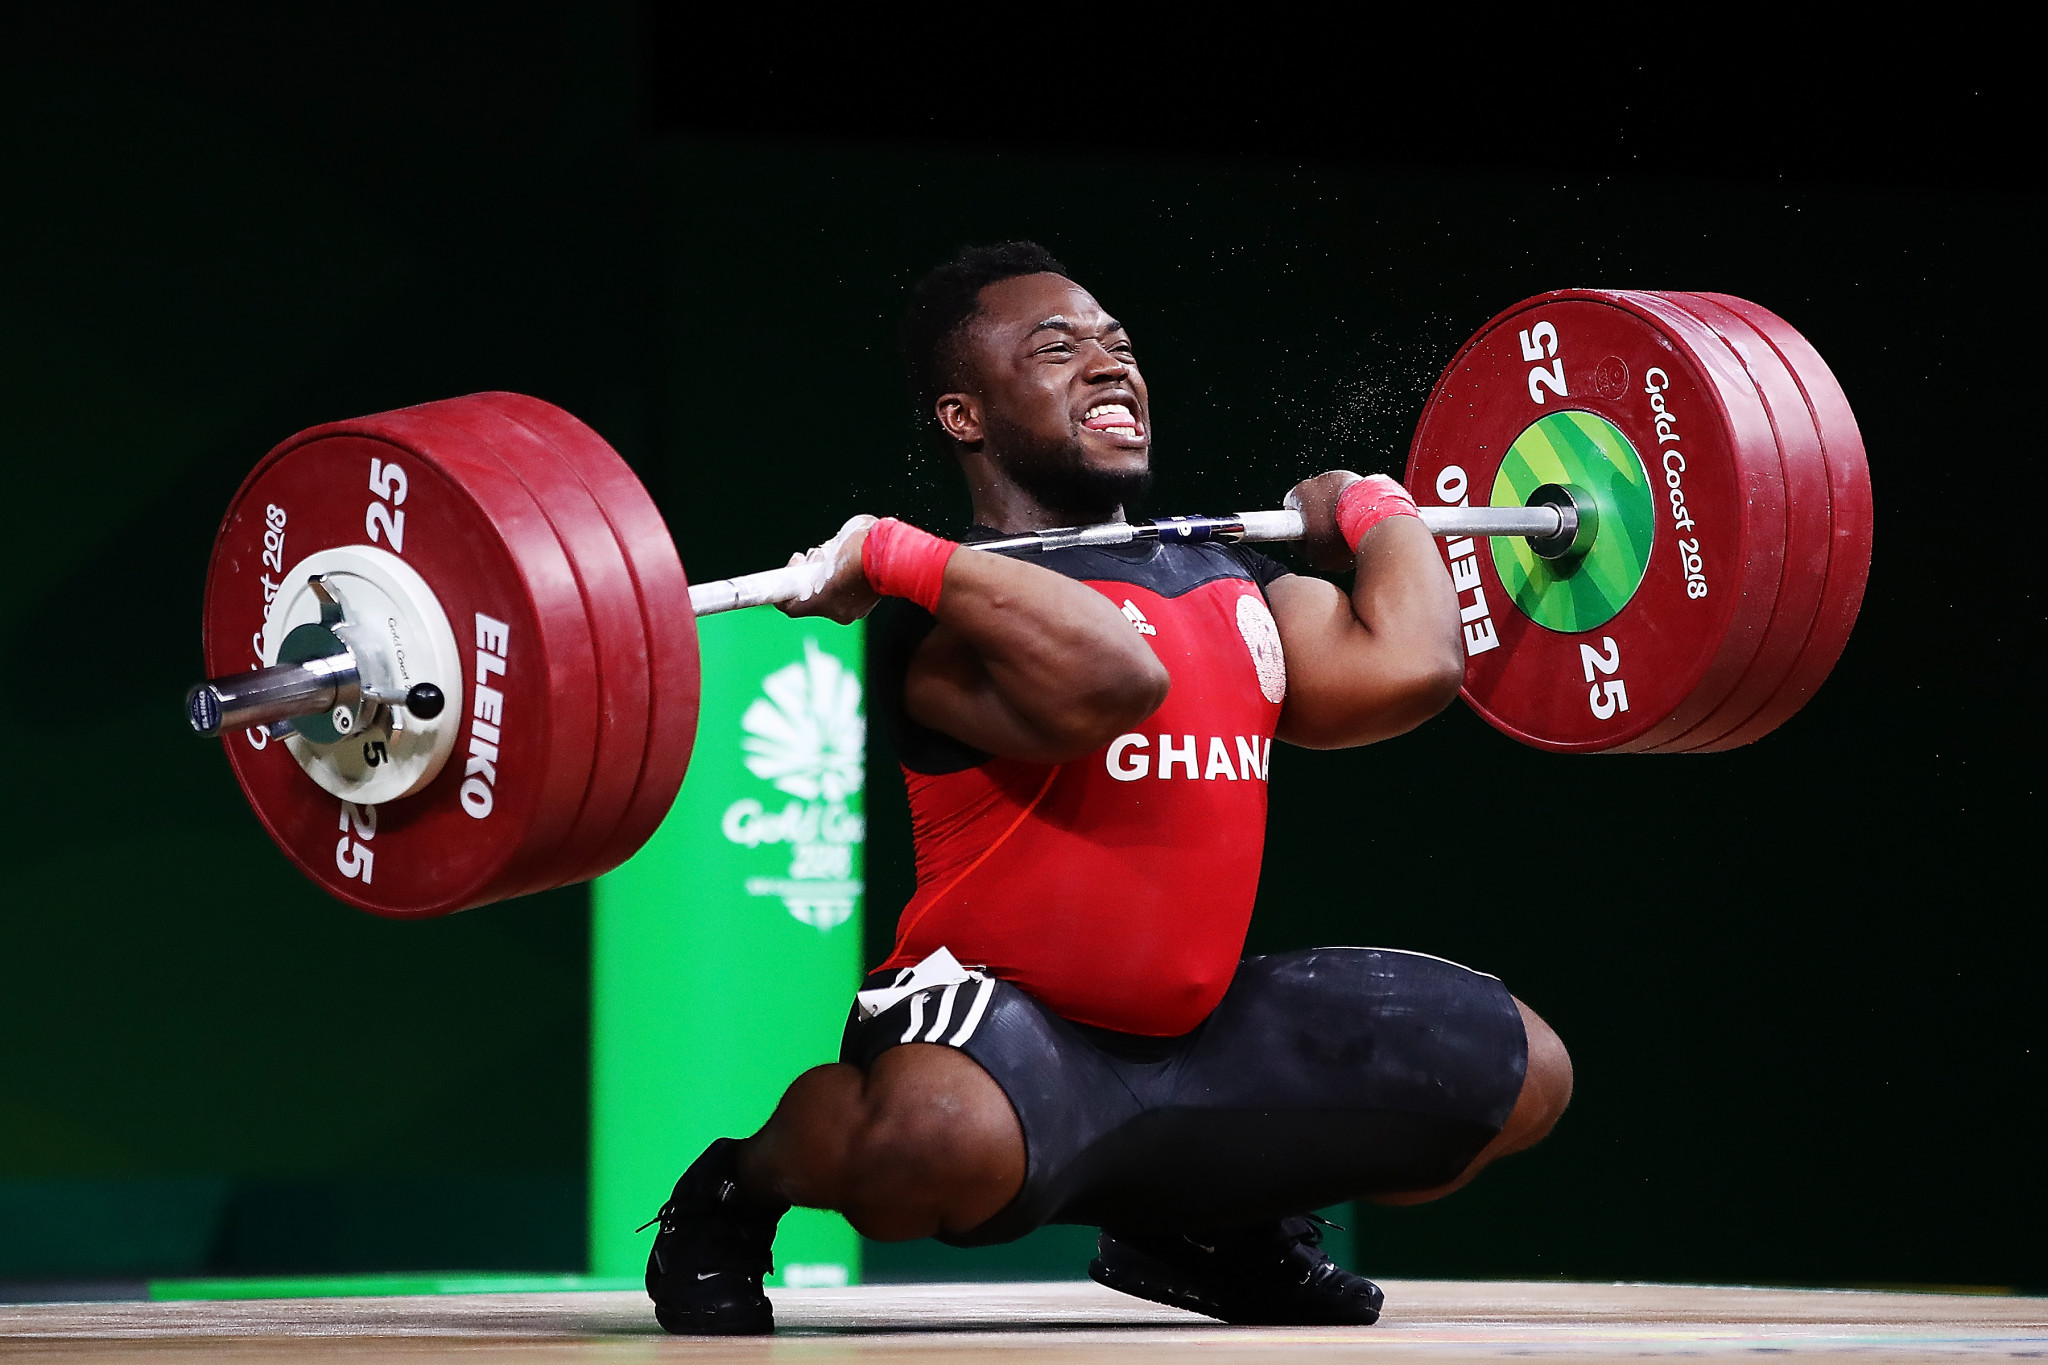 Ghana's Forrester Osei, deputy chair of the IWF Athletes' Commission, described the investigation and testing improvements as